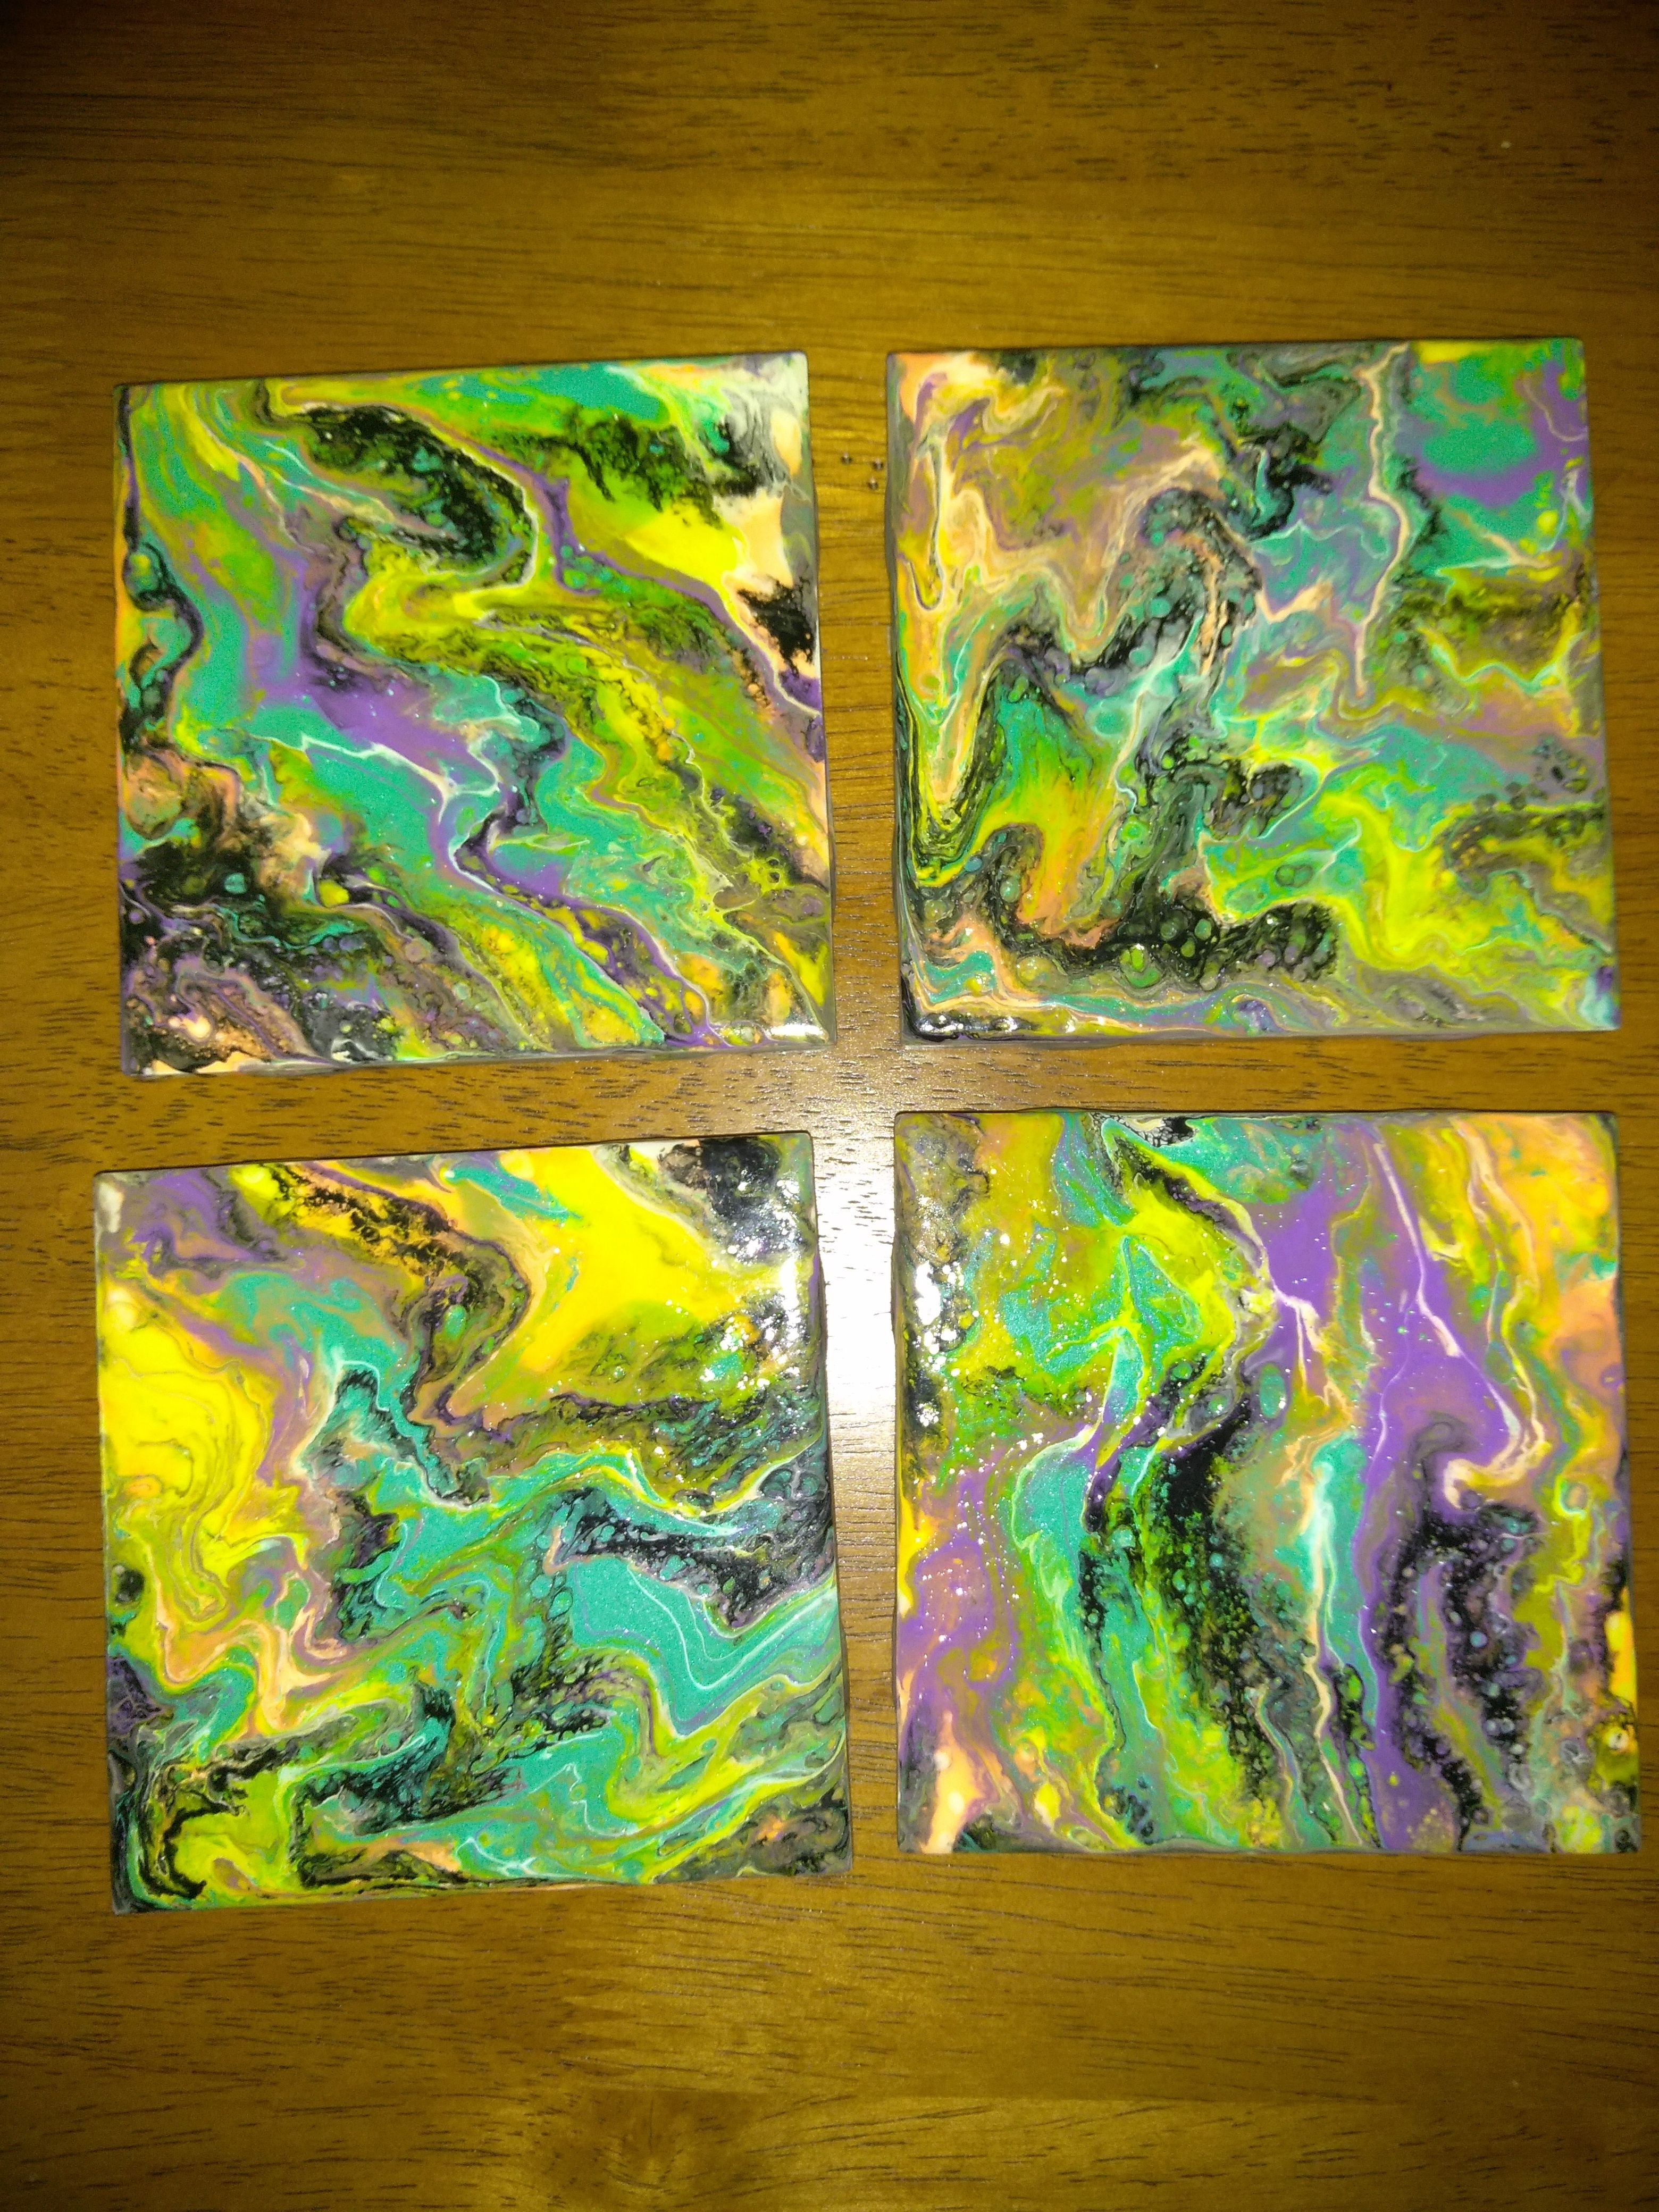 Set of 4 coasters 4x4 ceramic tiles pour painted in multiple colors set of 4 coasters ceramic tiles pour painted in multiple colors waterproof heat resistant up to 550 degrees for sale dailygadgetfo Choice Image